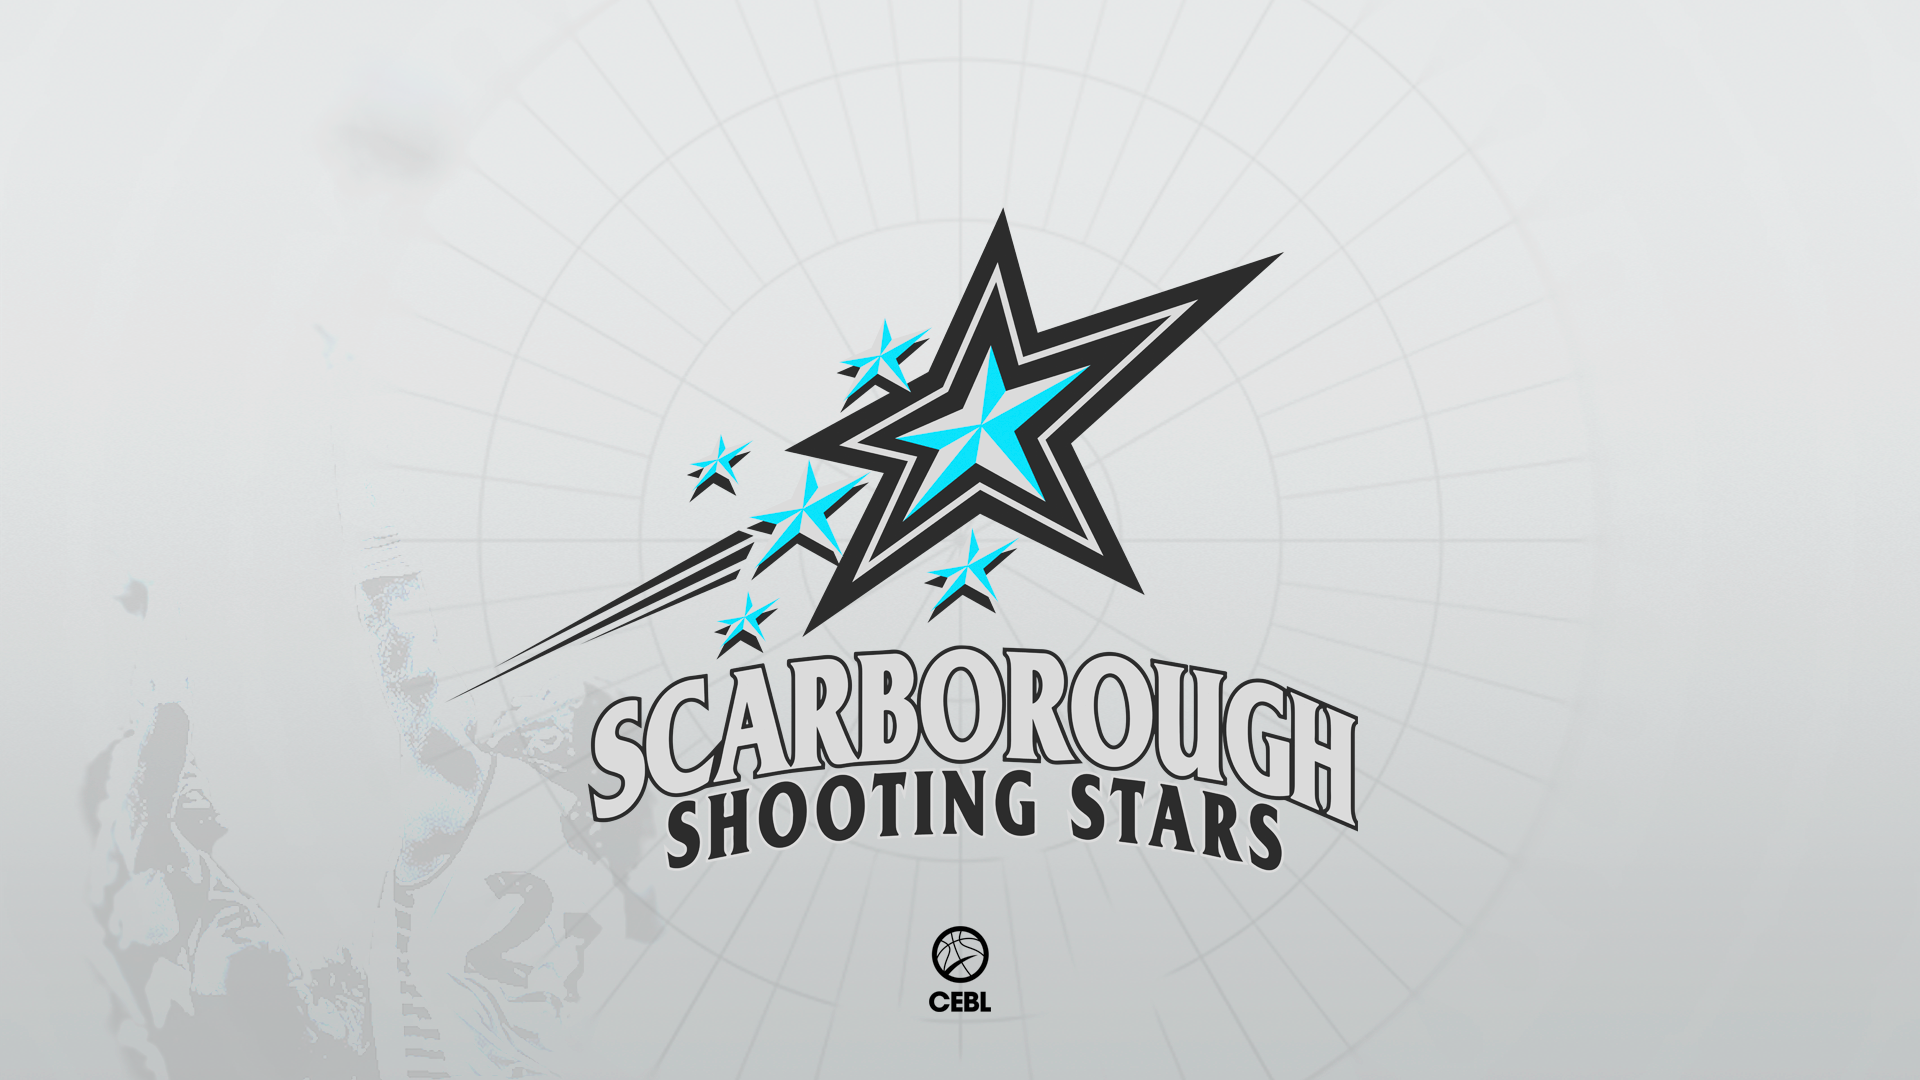 Scarborough Shooting Stars Launched As First GTA Franchise In CEBL